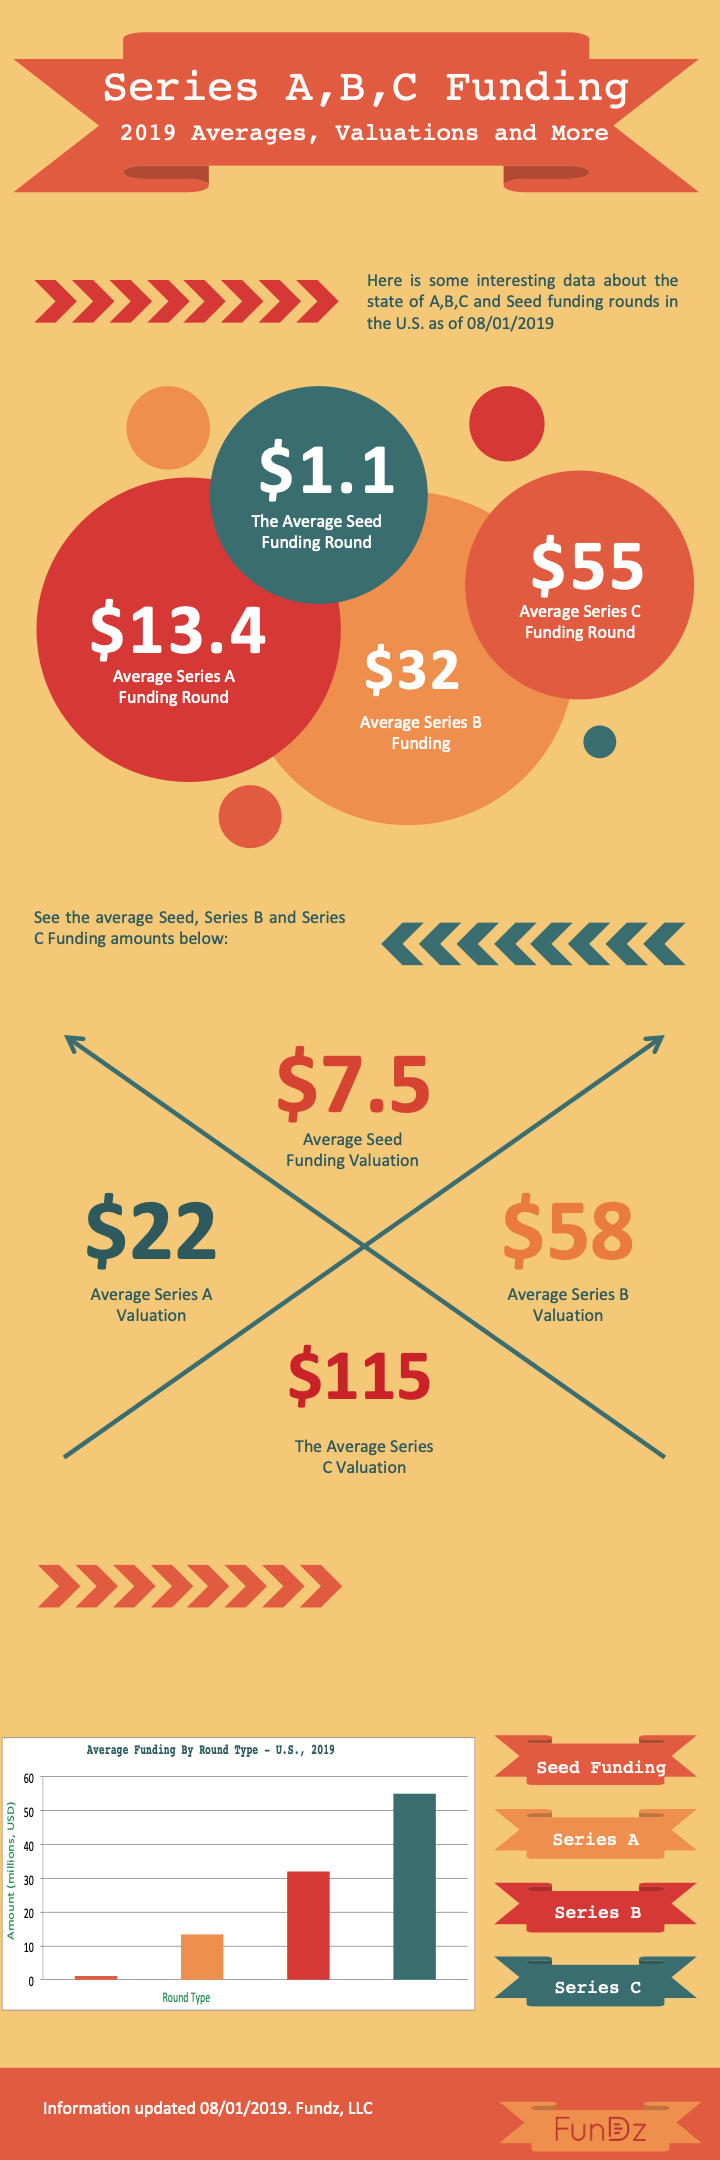 series a, b, c funding-amount-valuation-2019